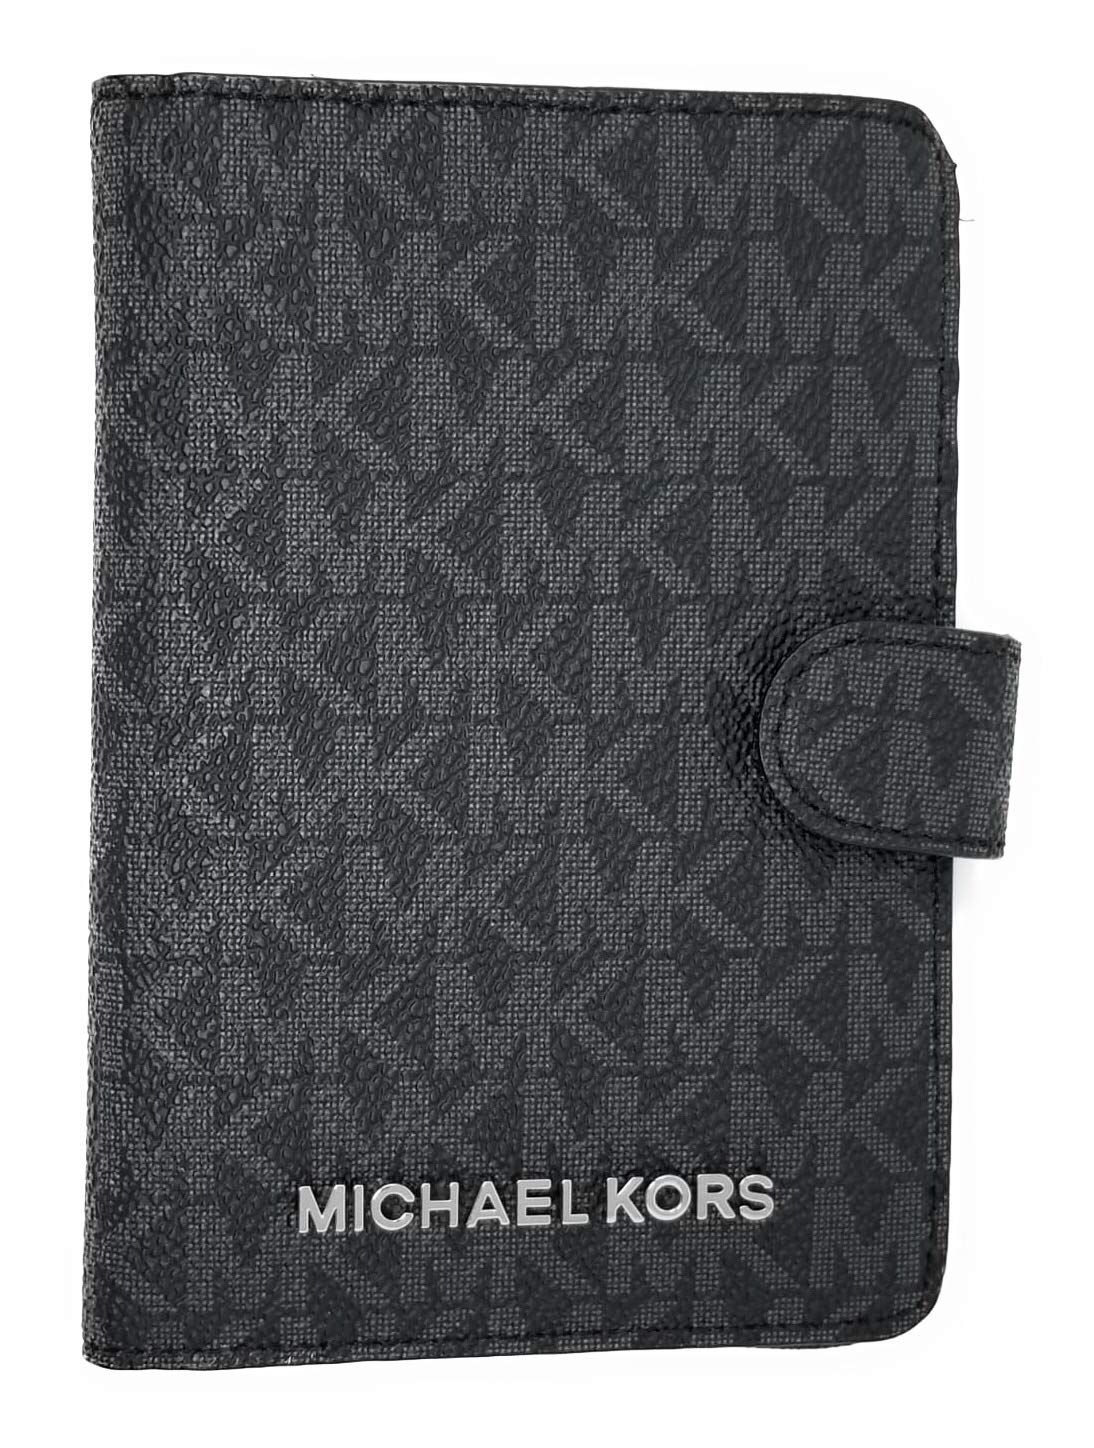 Michael Kors Jet Set Travel Passport Case Wallet (Black PVC 2018) by Michael Kors (Image #1)